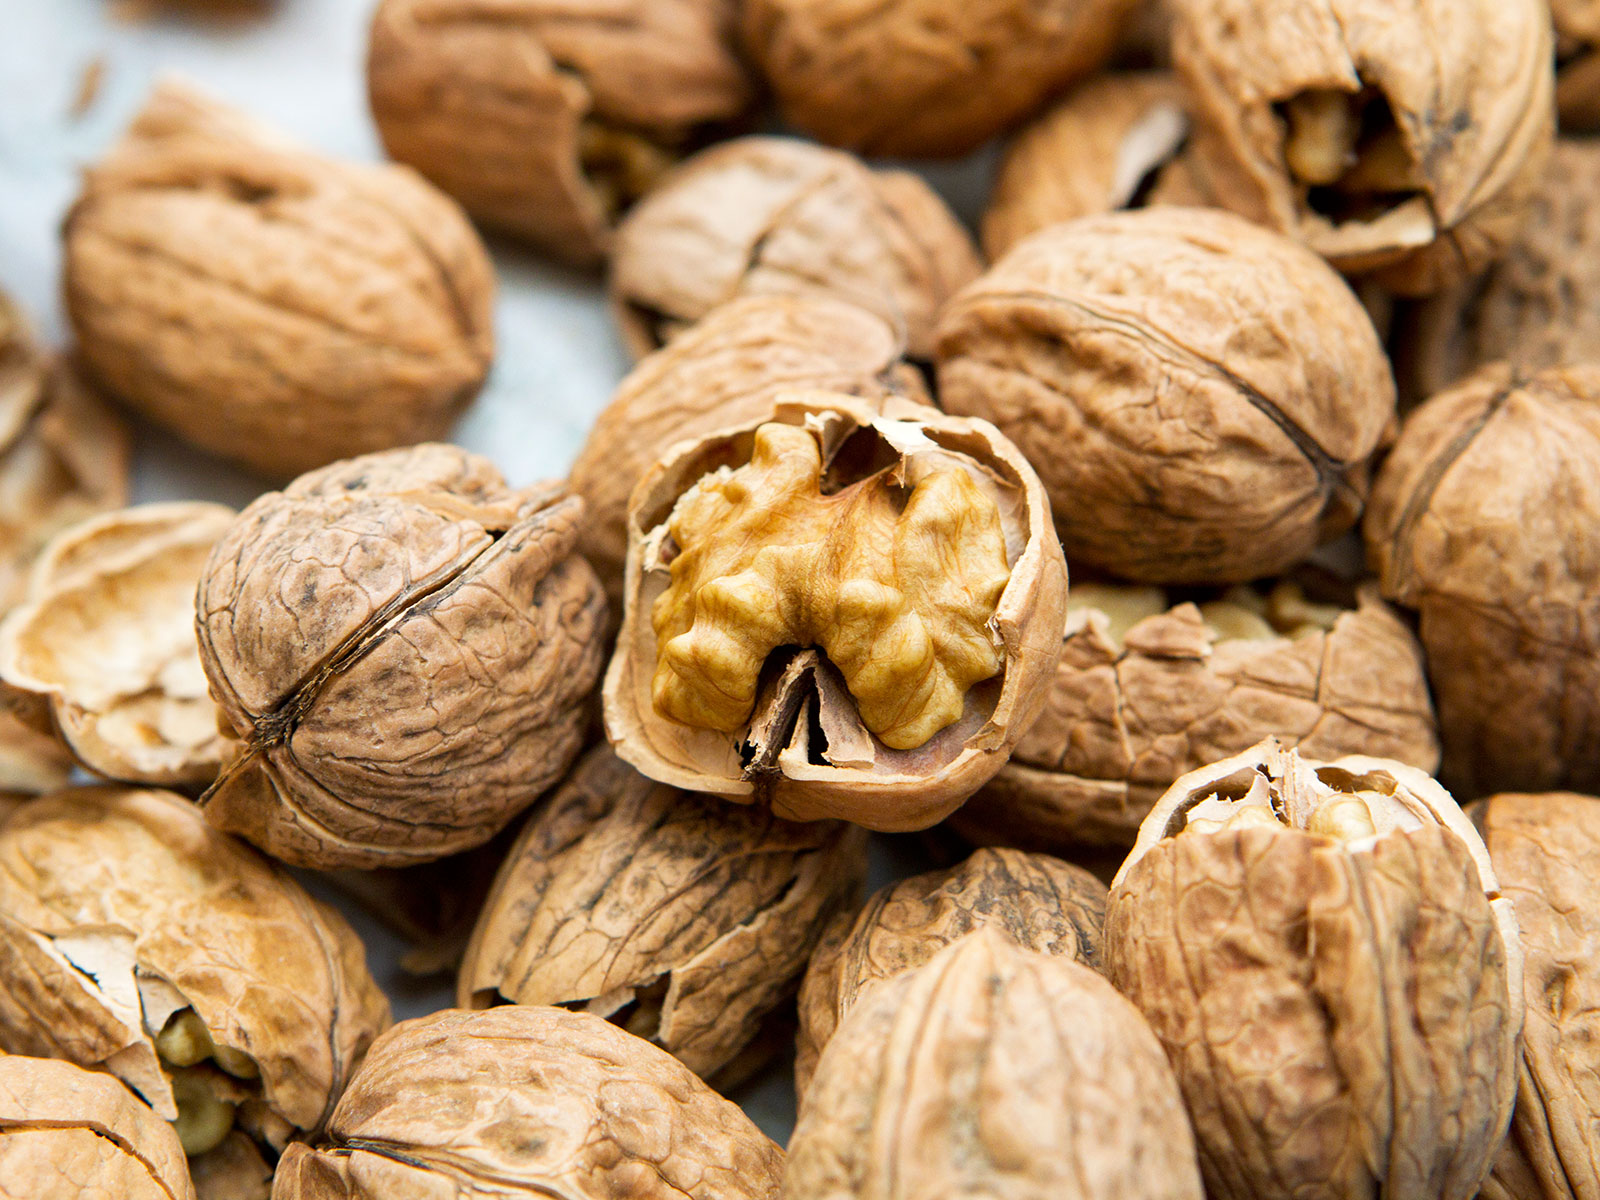 Eating Walnuts Could Help Control Your Appetite